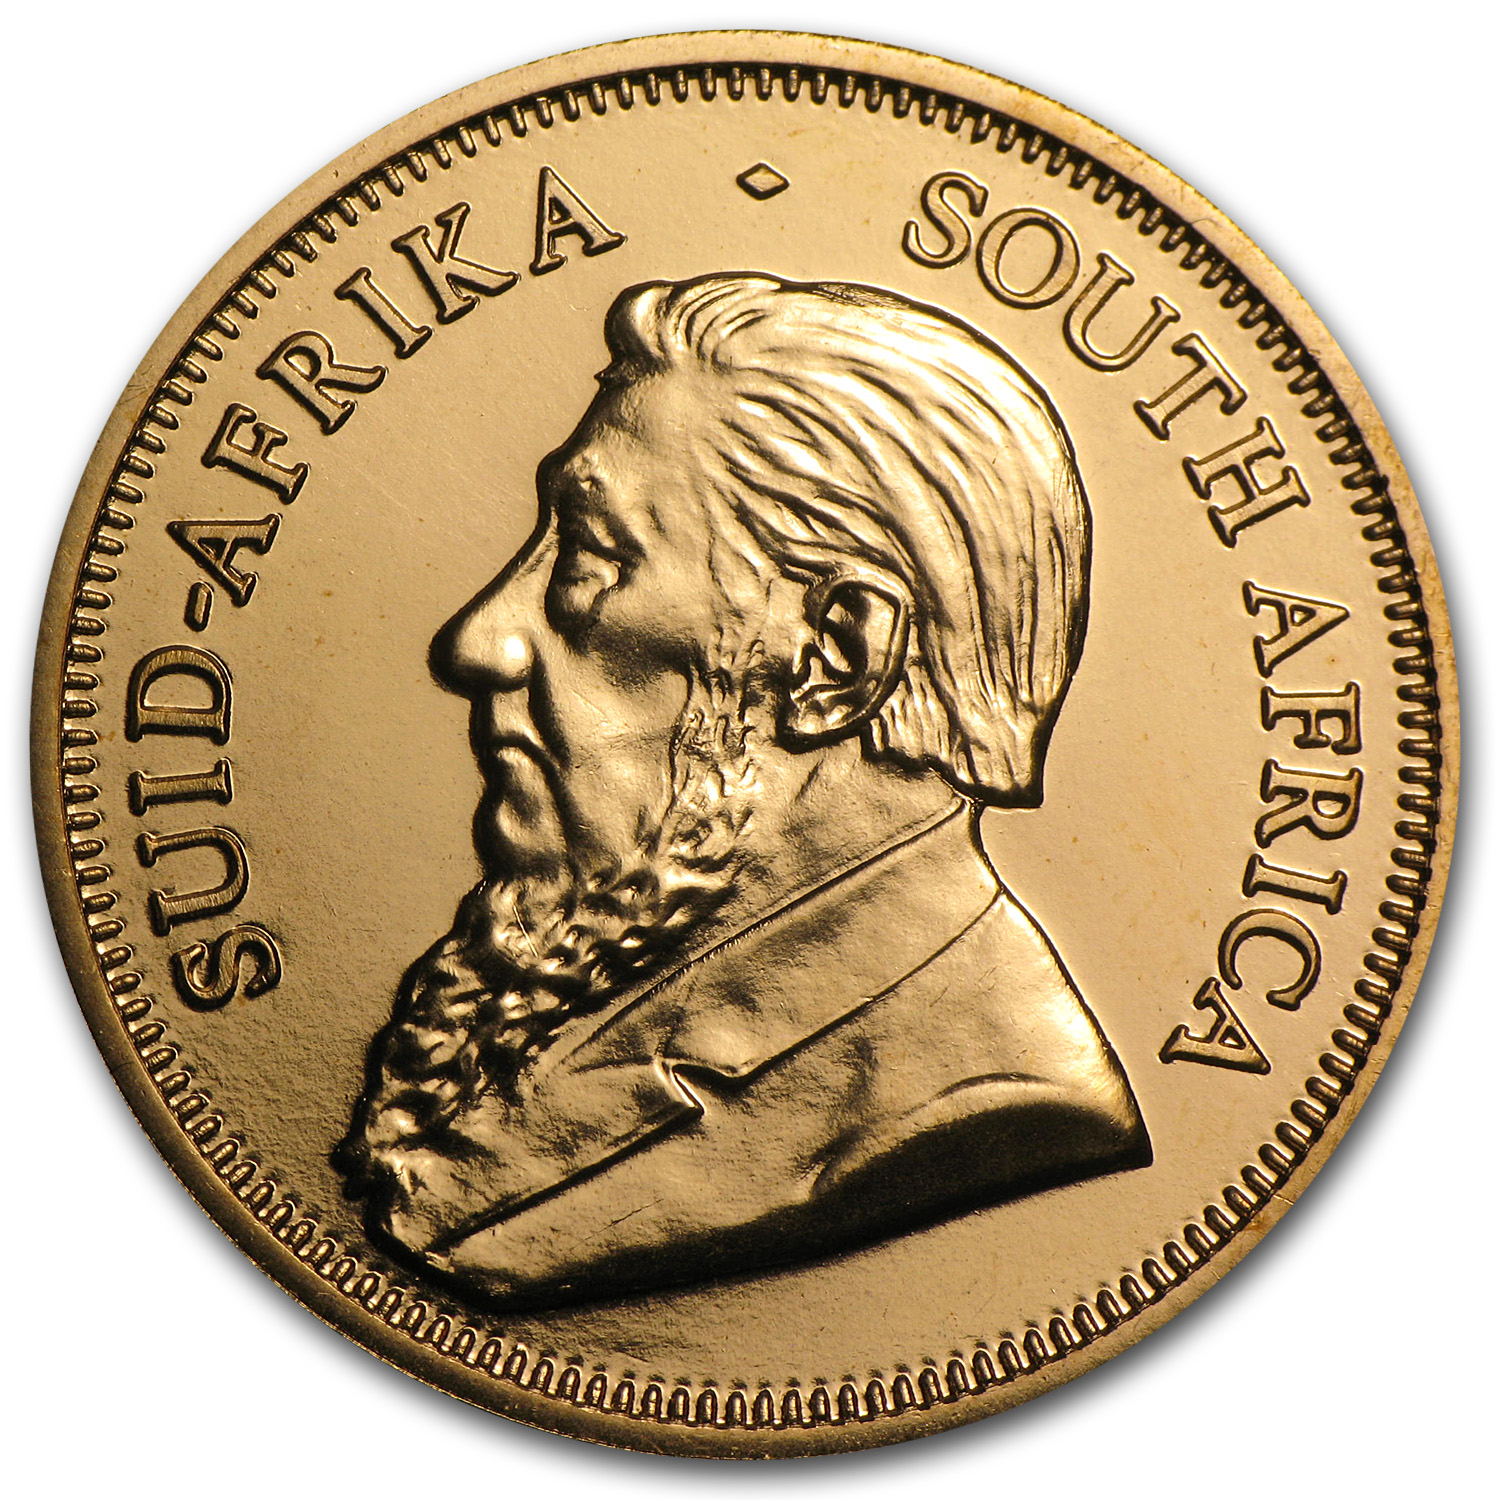 2009 1/2 oz Gold South African Krugerrand